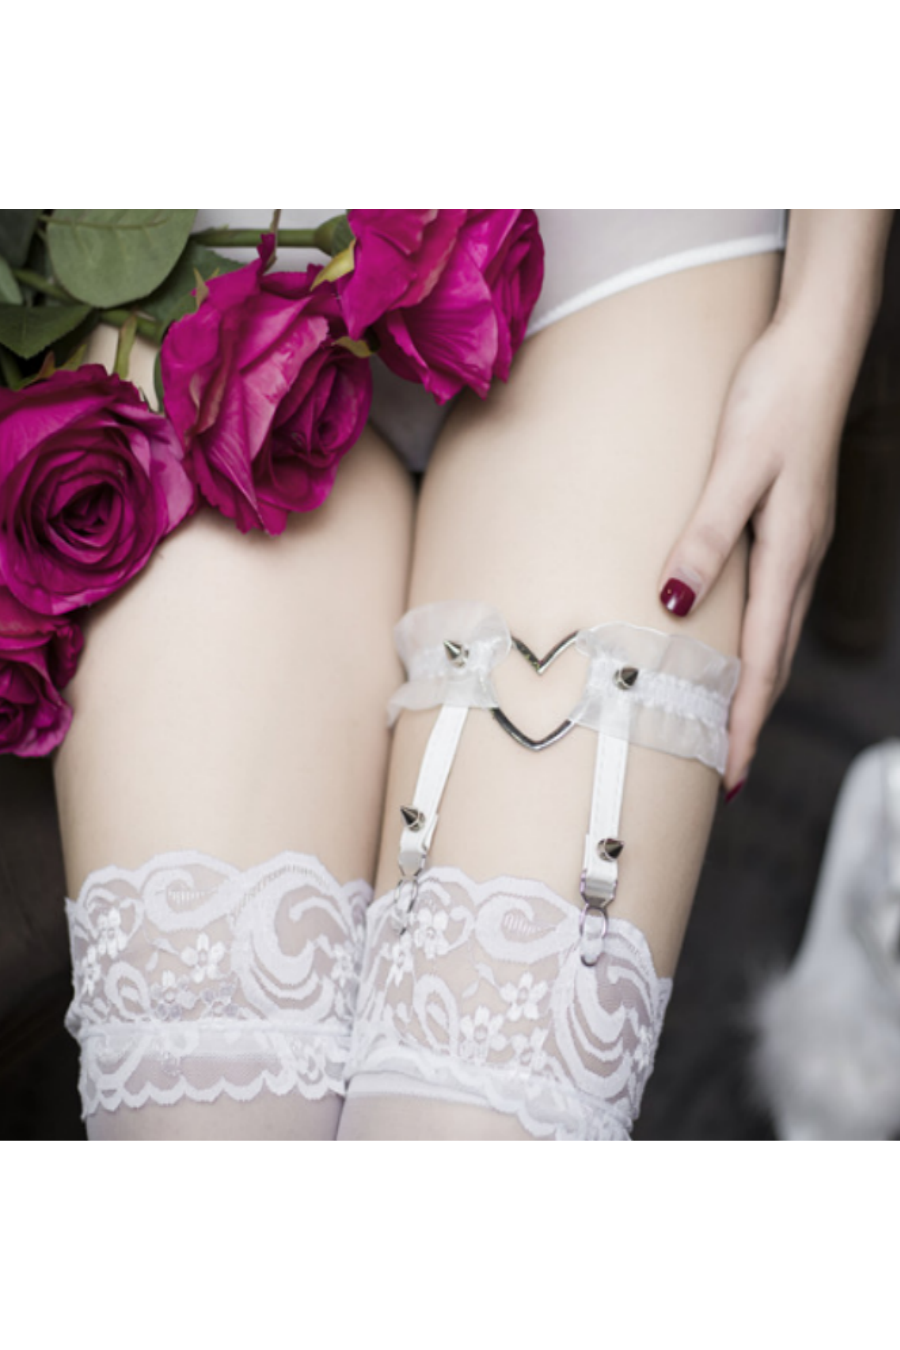 Sexy Heart Lace Garter Belt